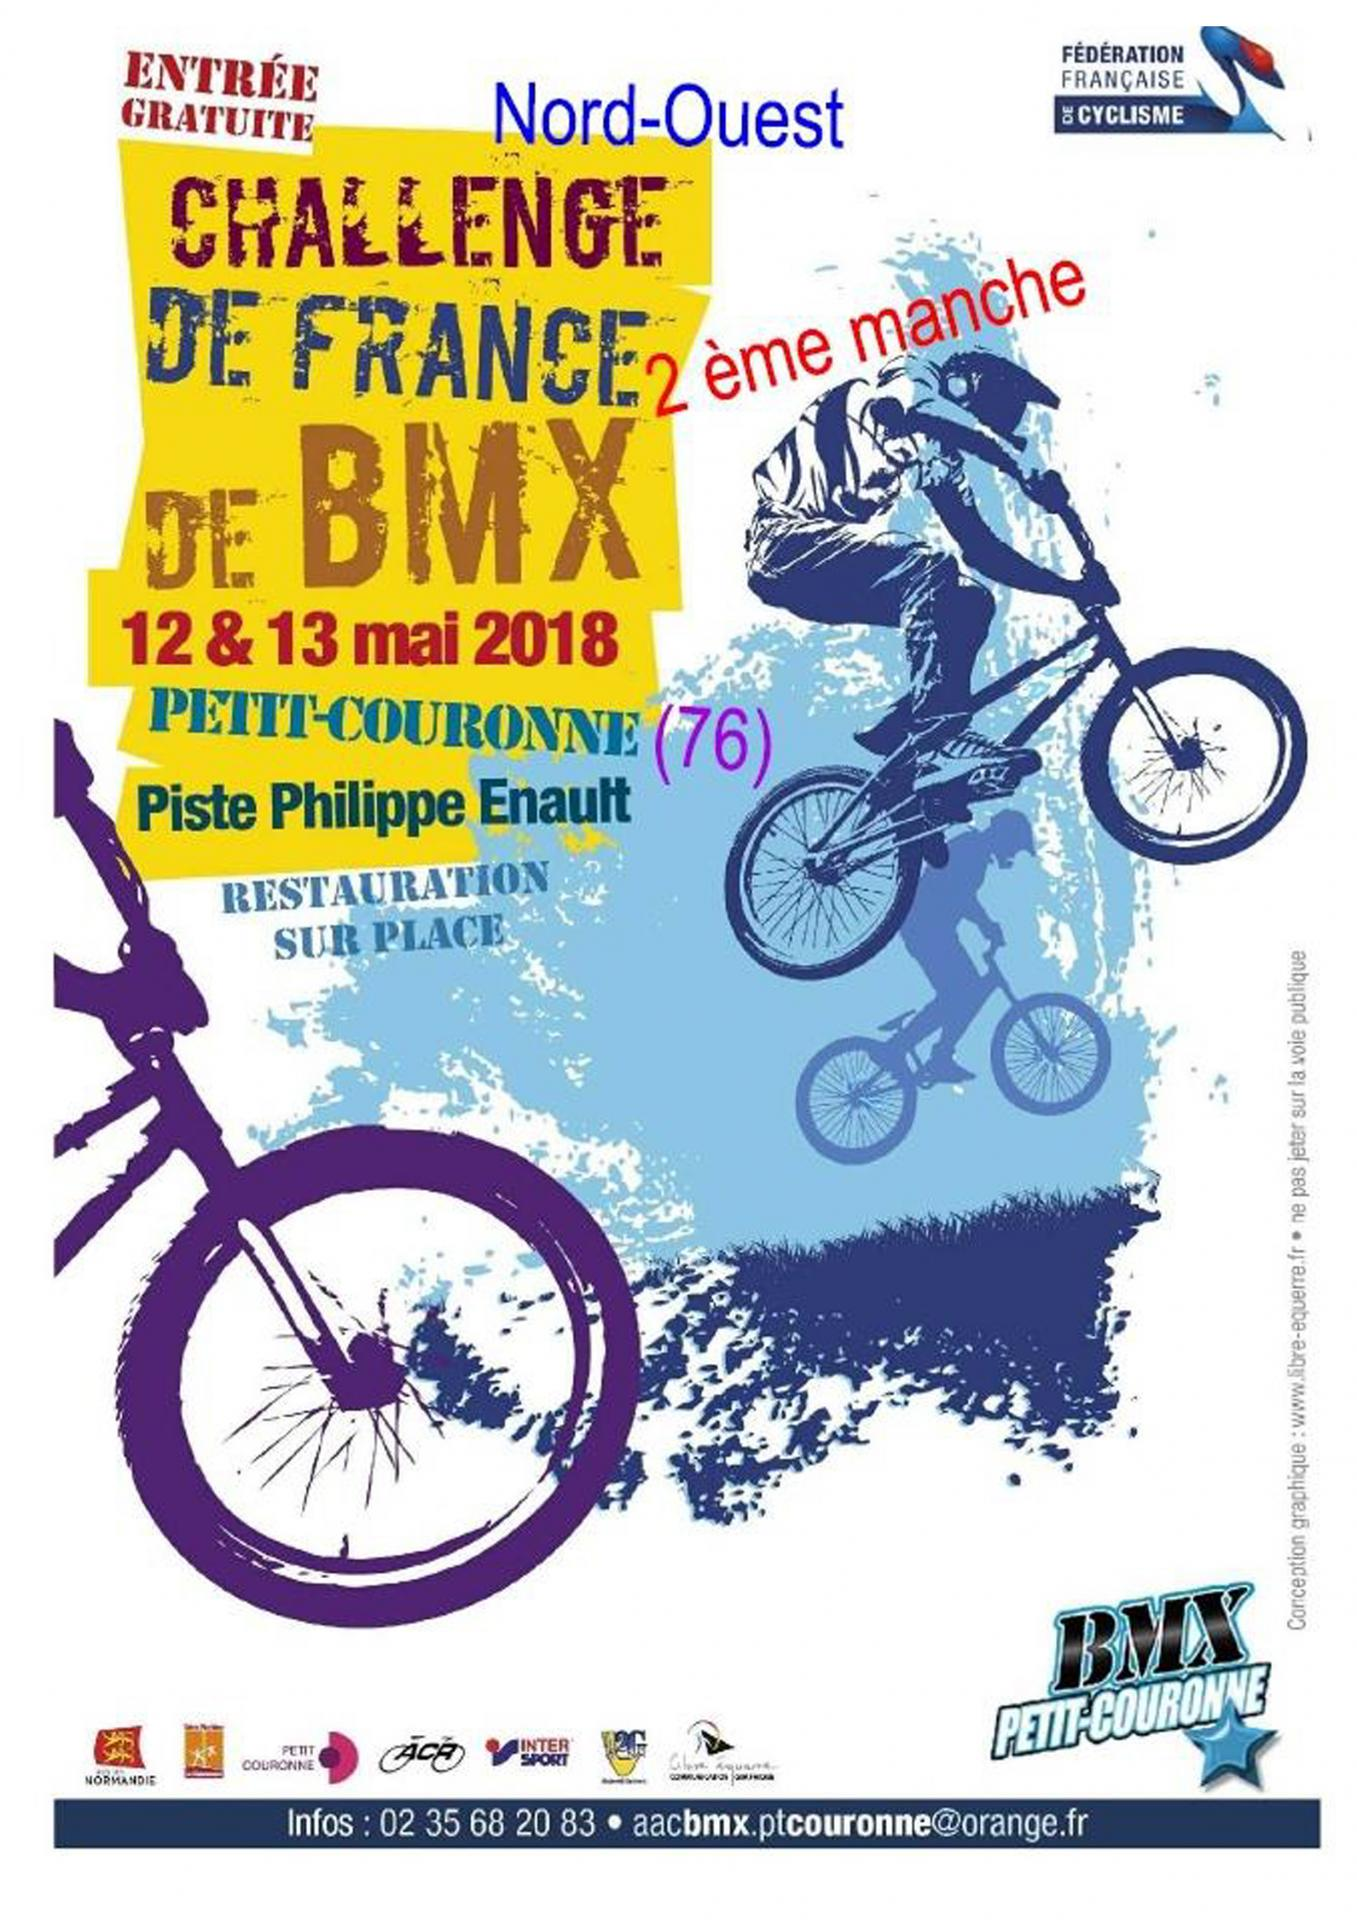 Challenge france nord ouest 2018 pt couronne